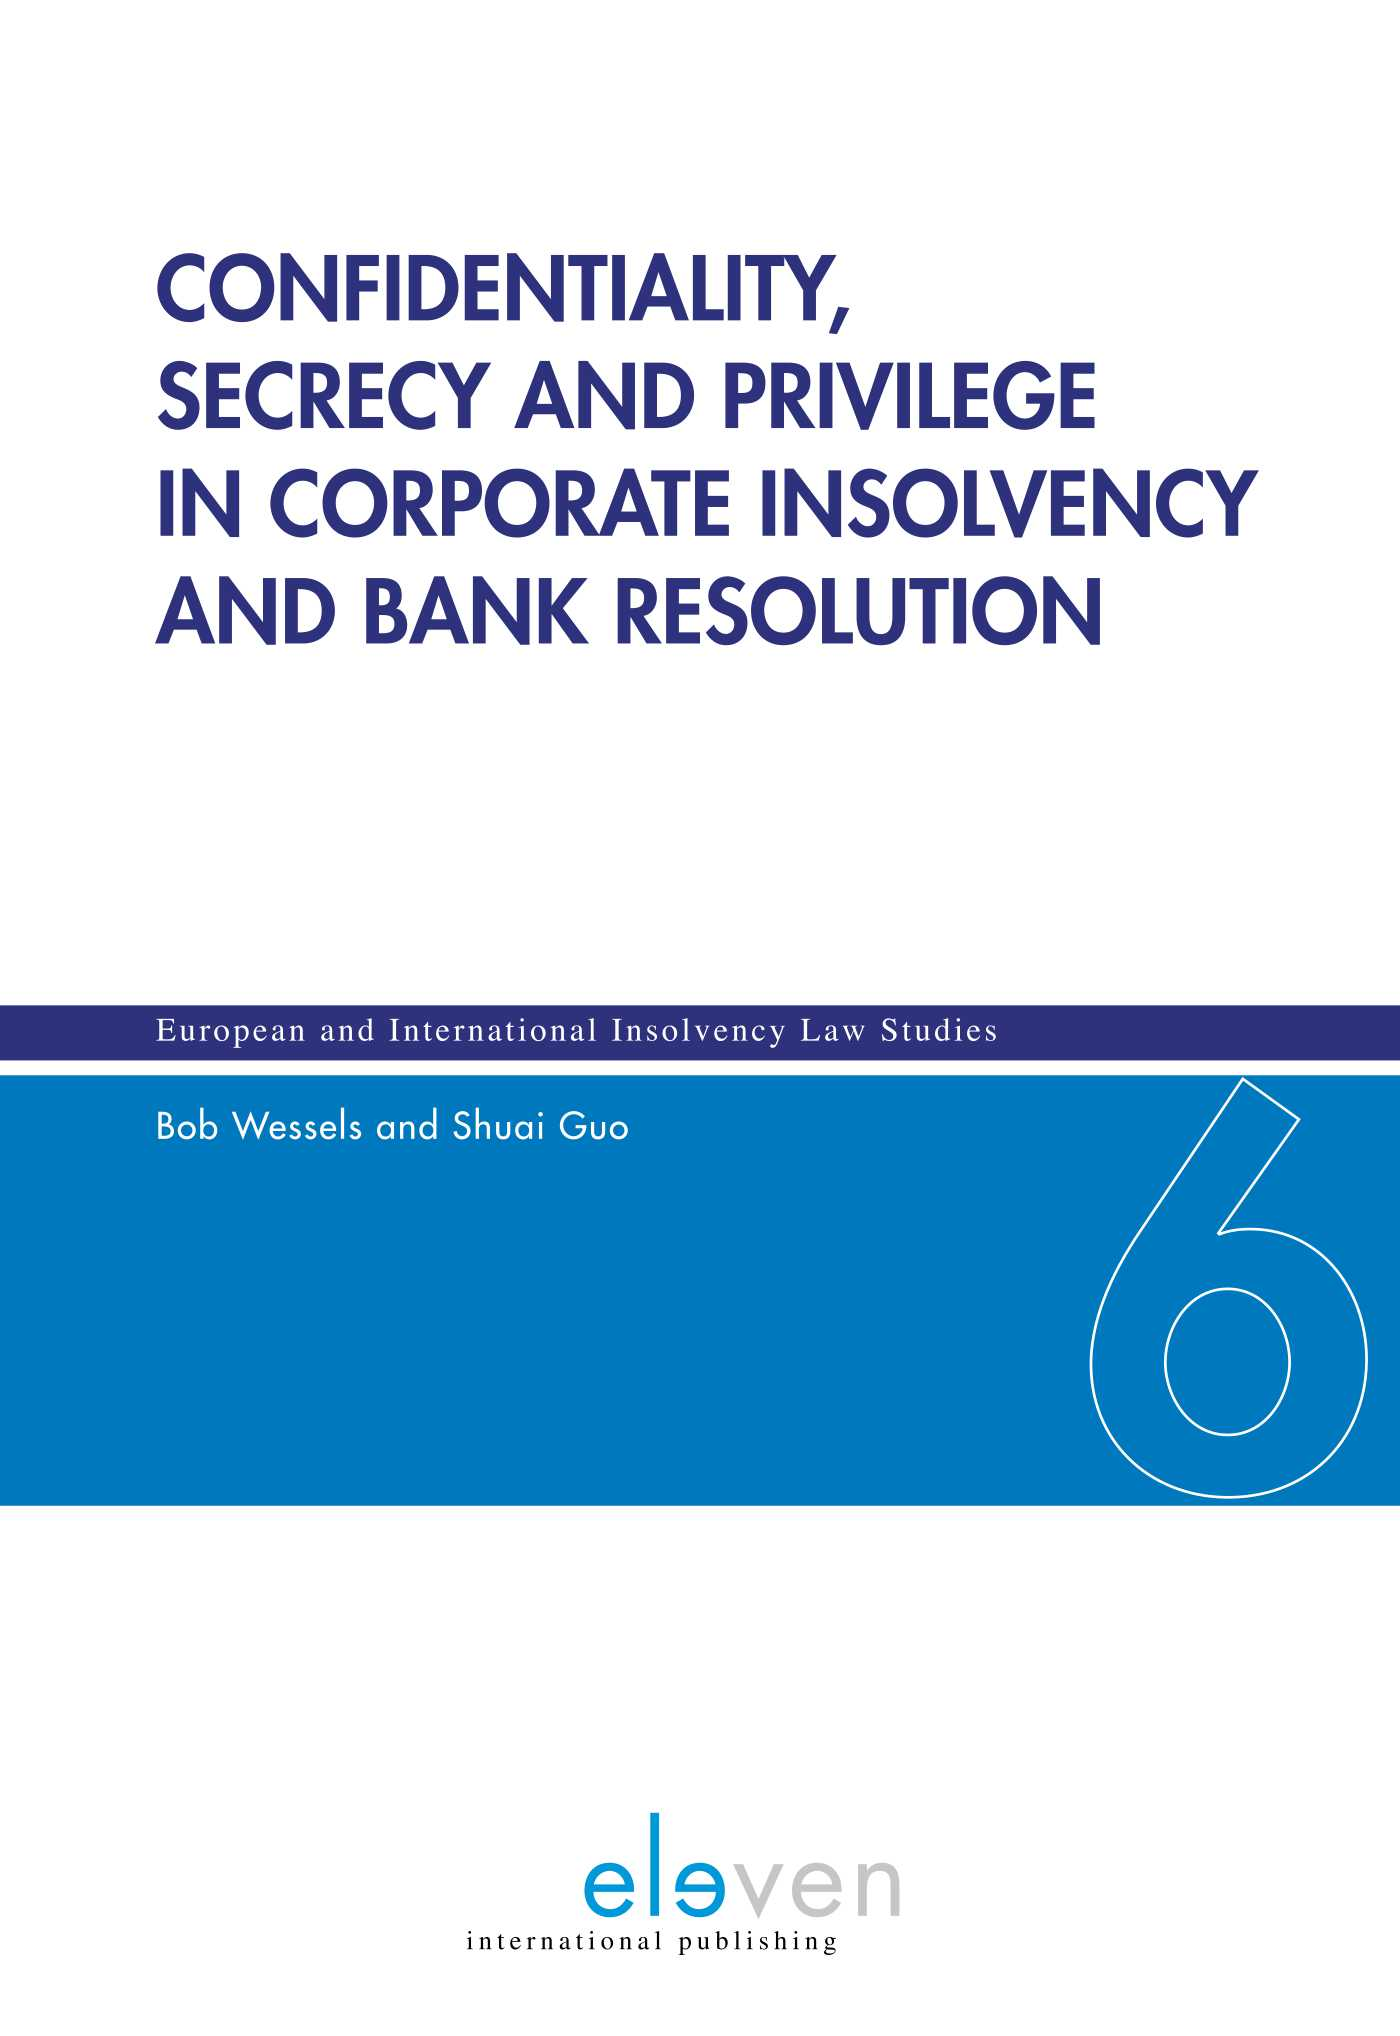 Confidentiality, secrecy and privilege in corporate insolvency and bank resolution